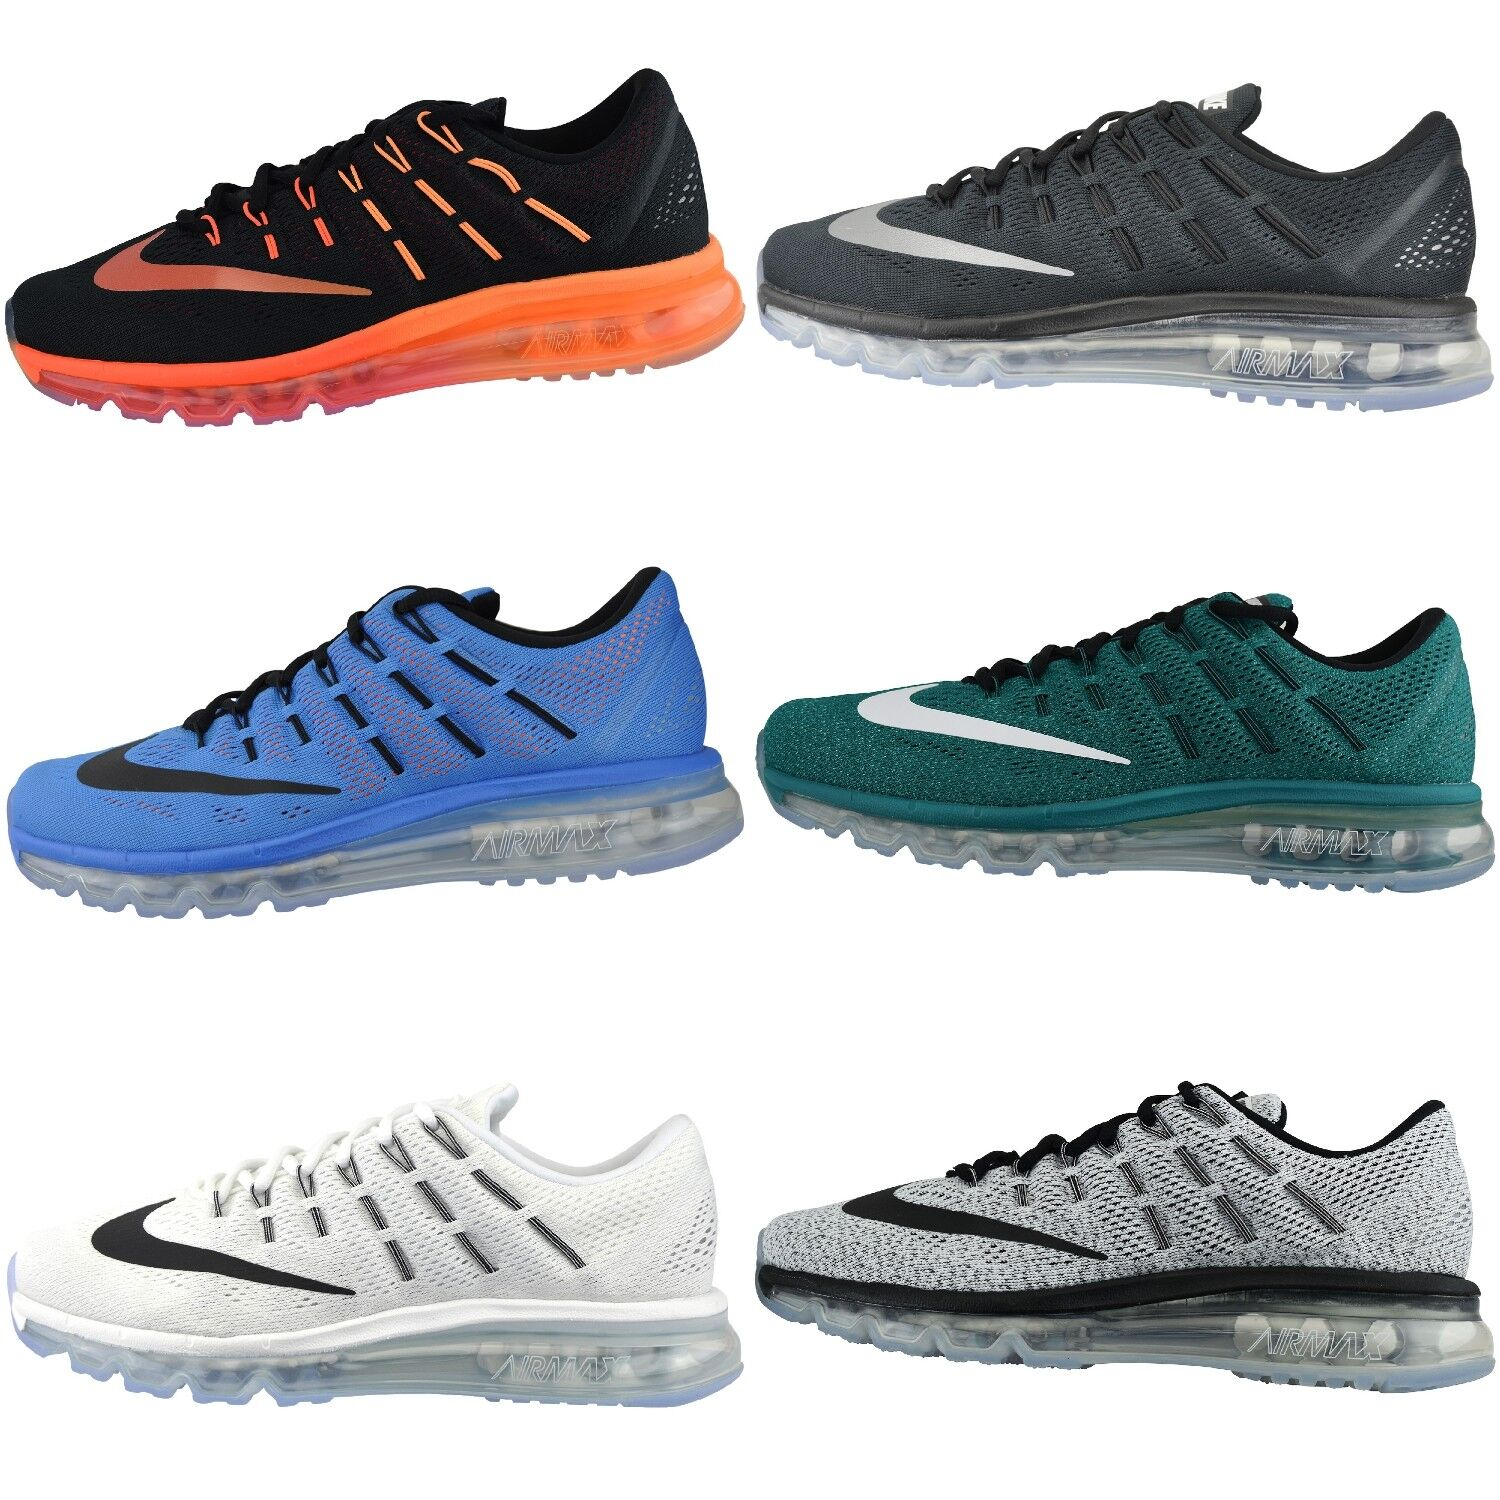 NIKE AIR MAX 2016 Running shoes Sneaker Trainers Textile